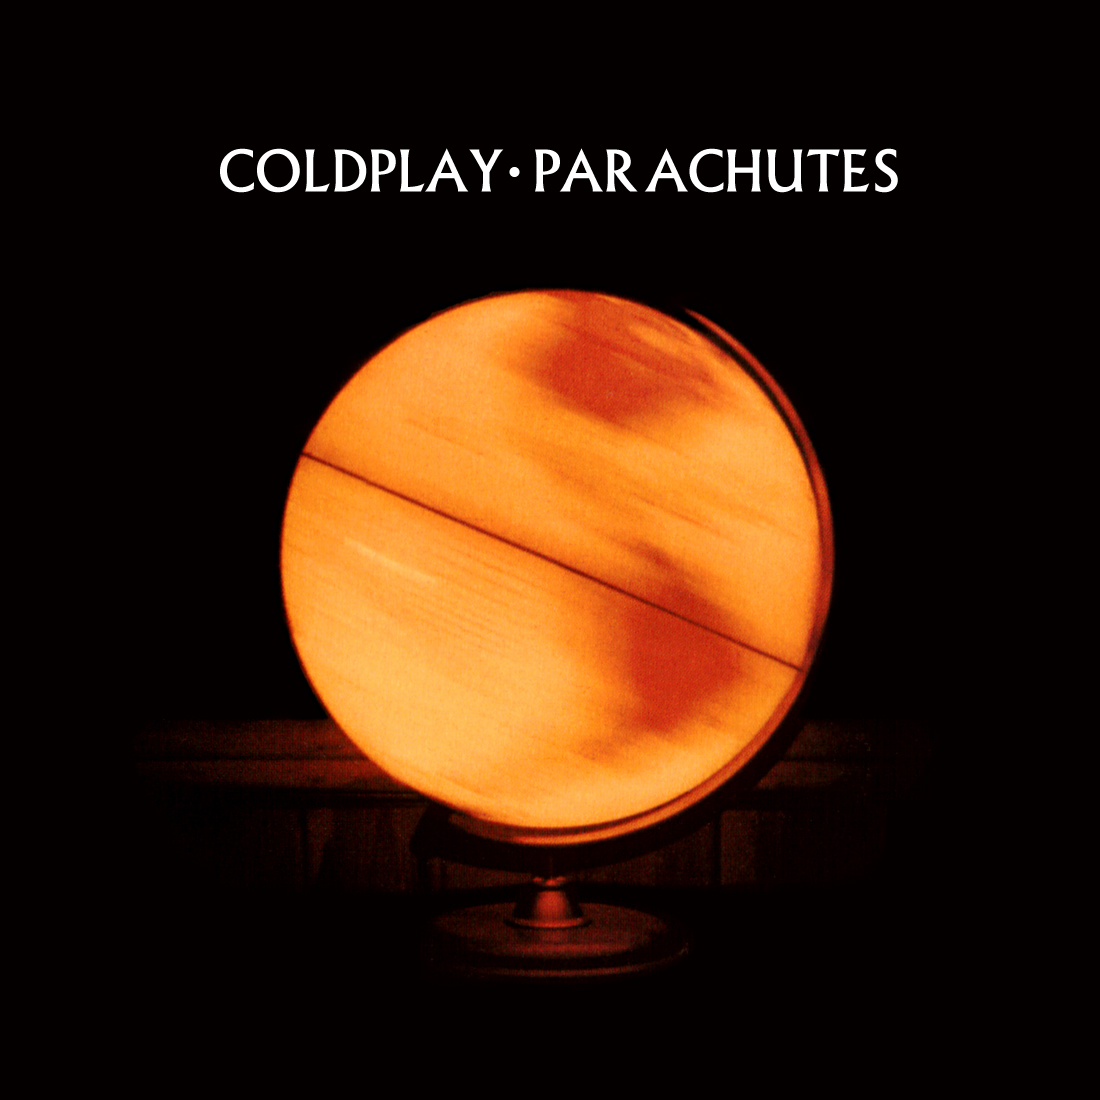 Parachutes The Coldplay Timeline